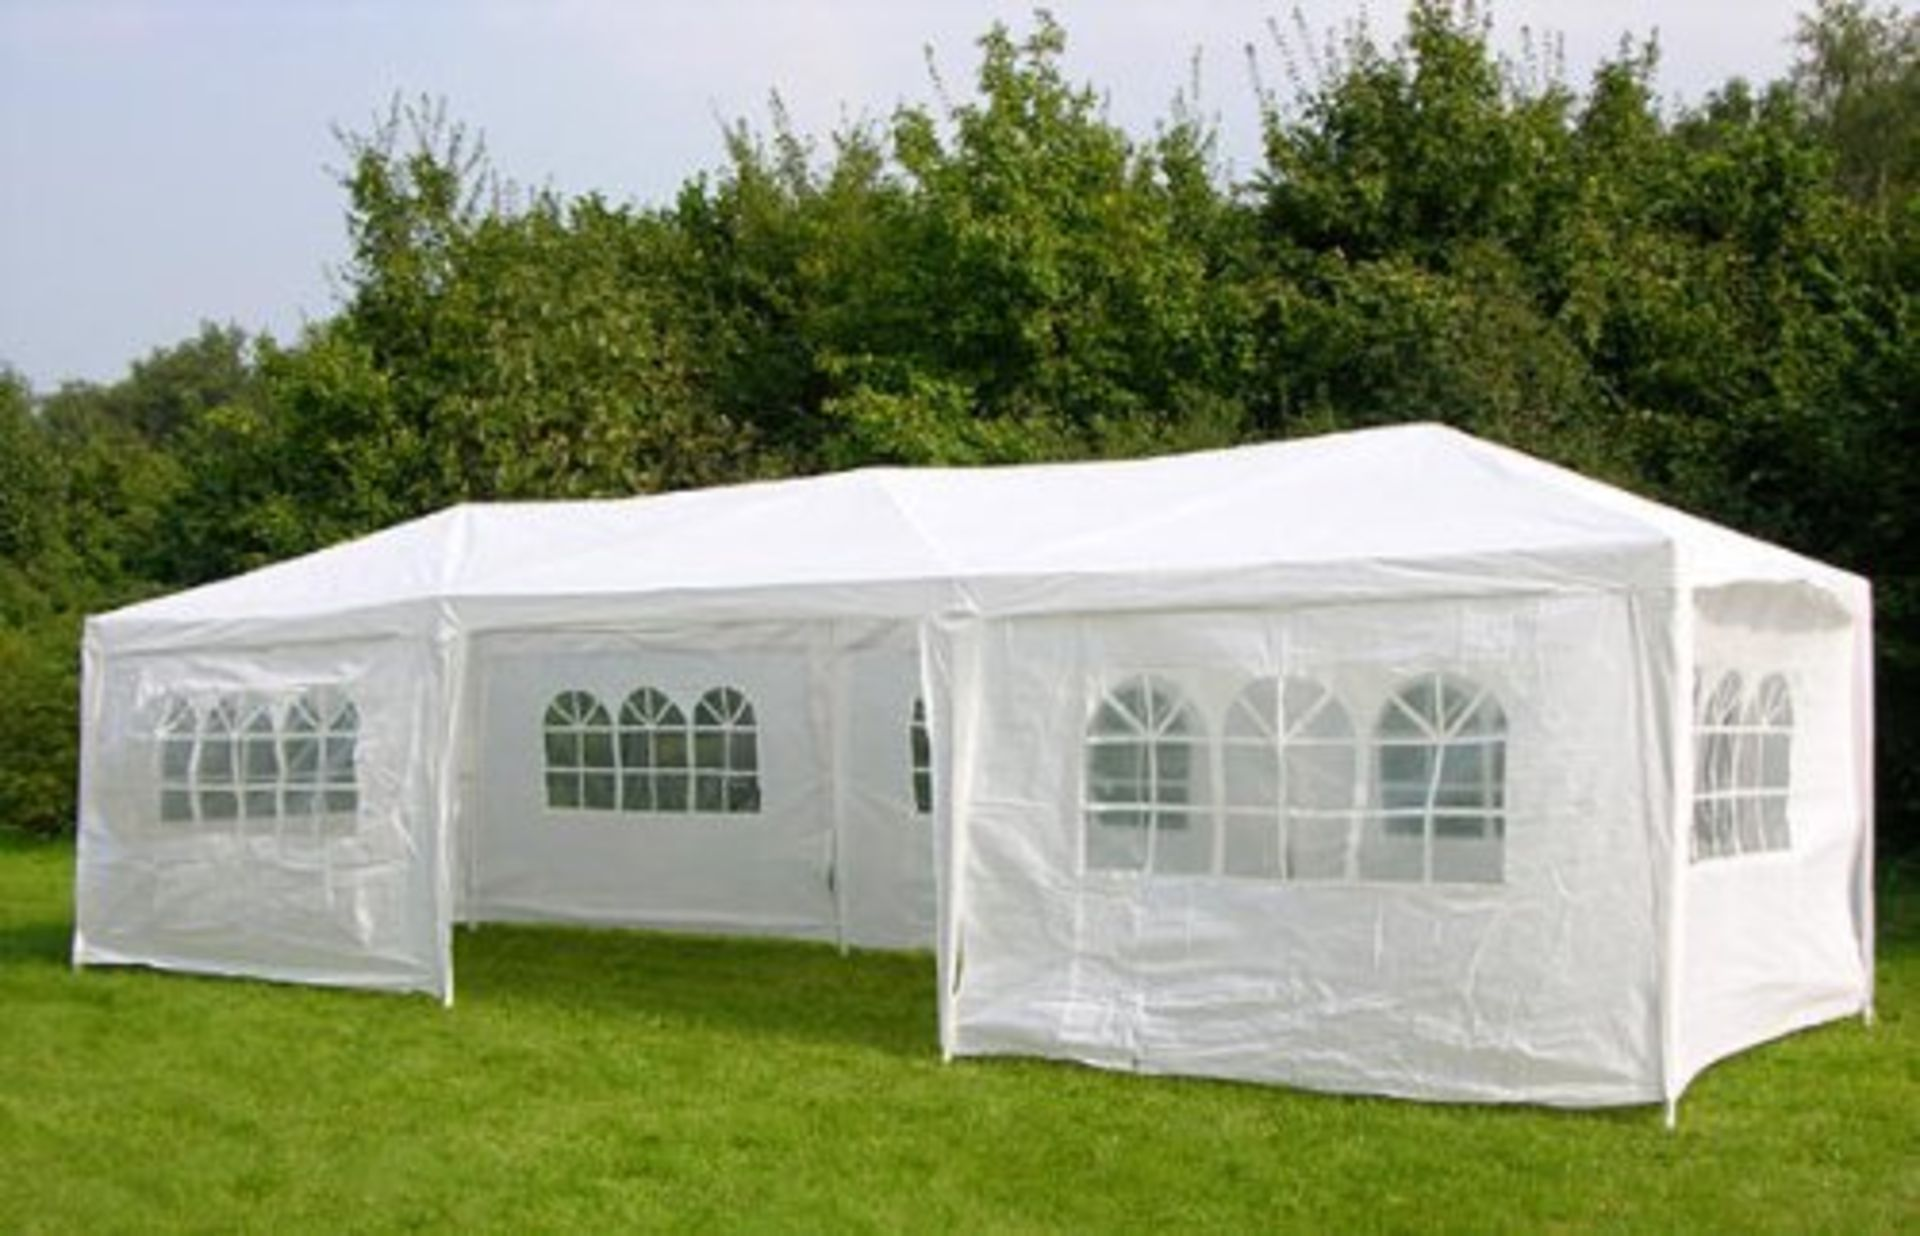 Lot 32140 - V Brand New 3M x 9M Gazebo